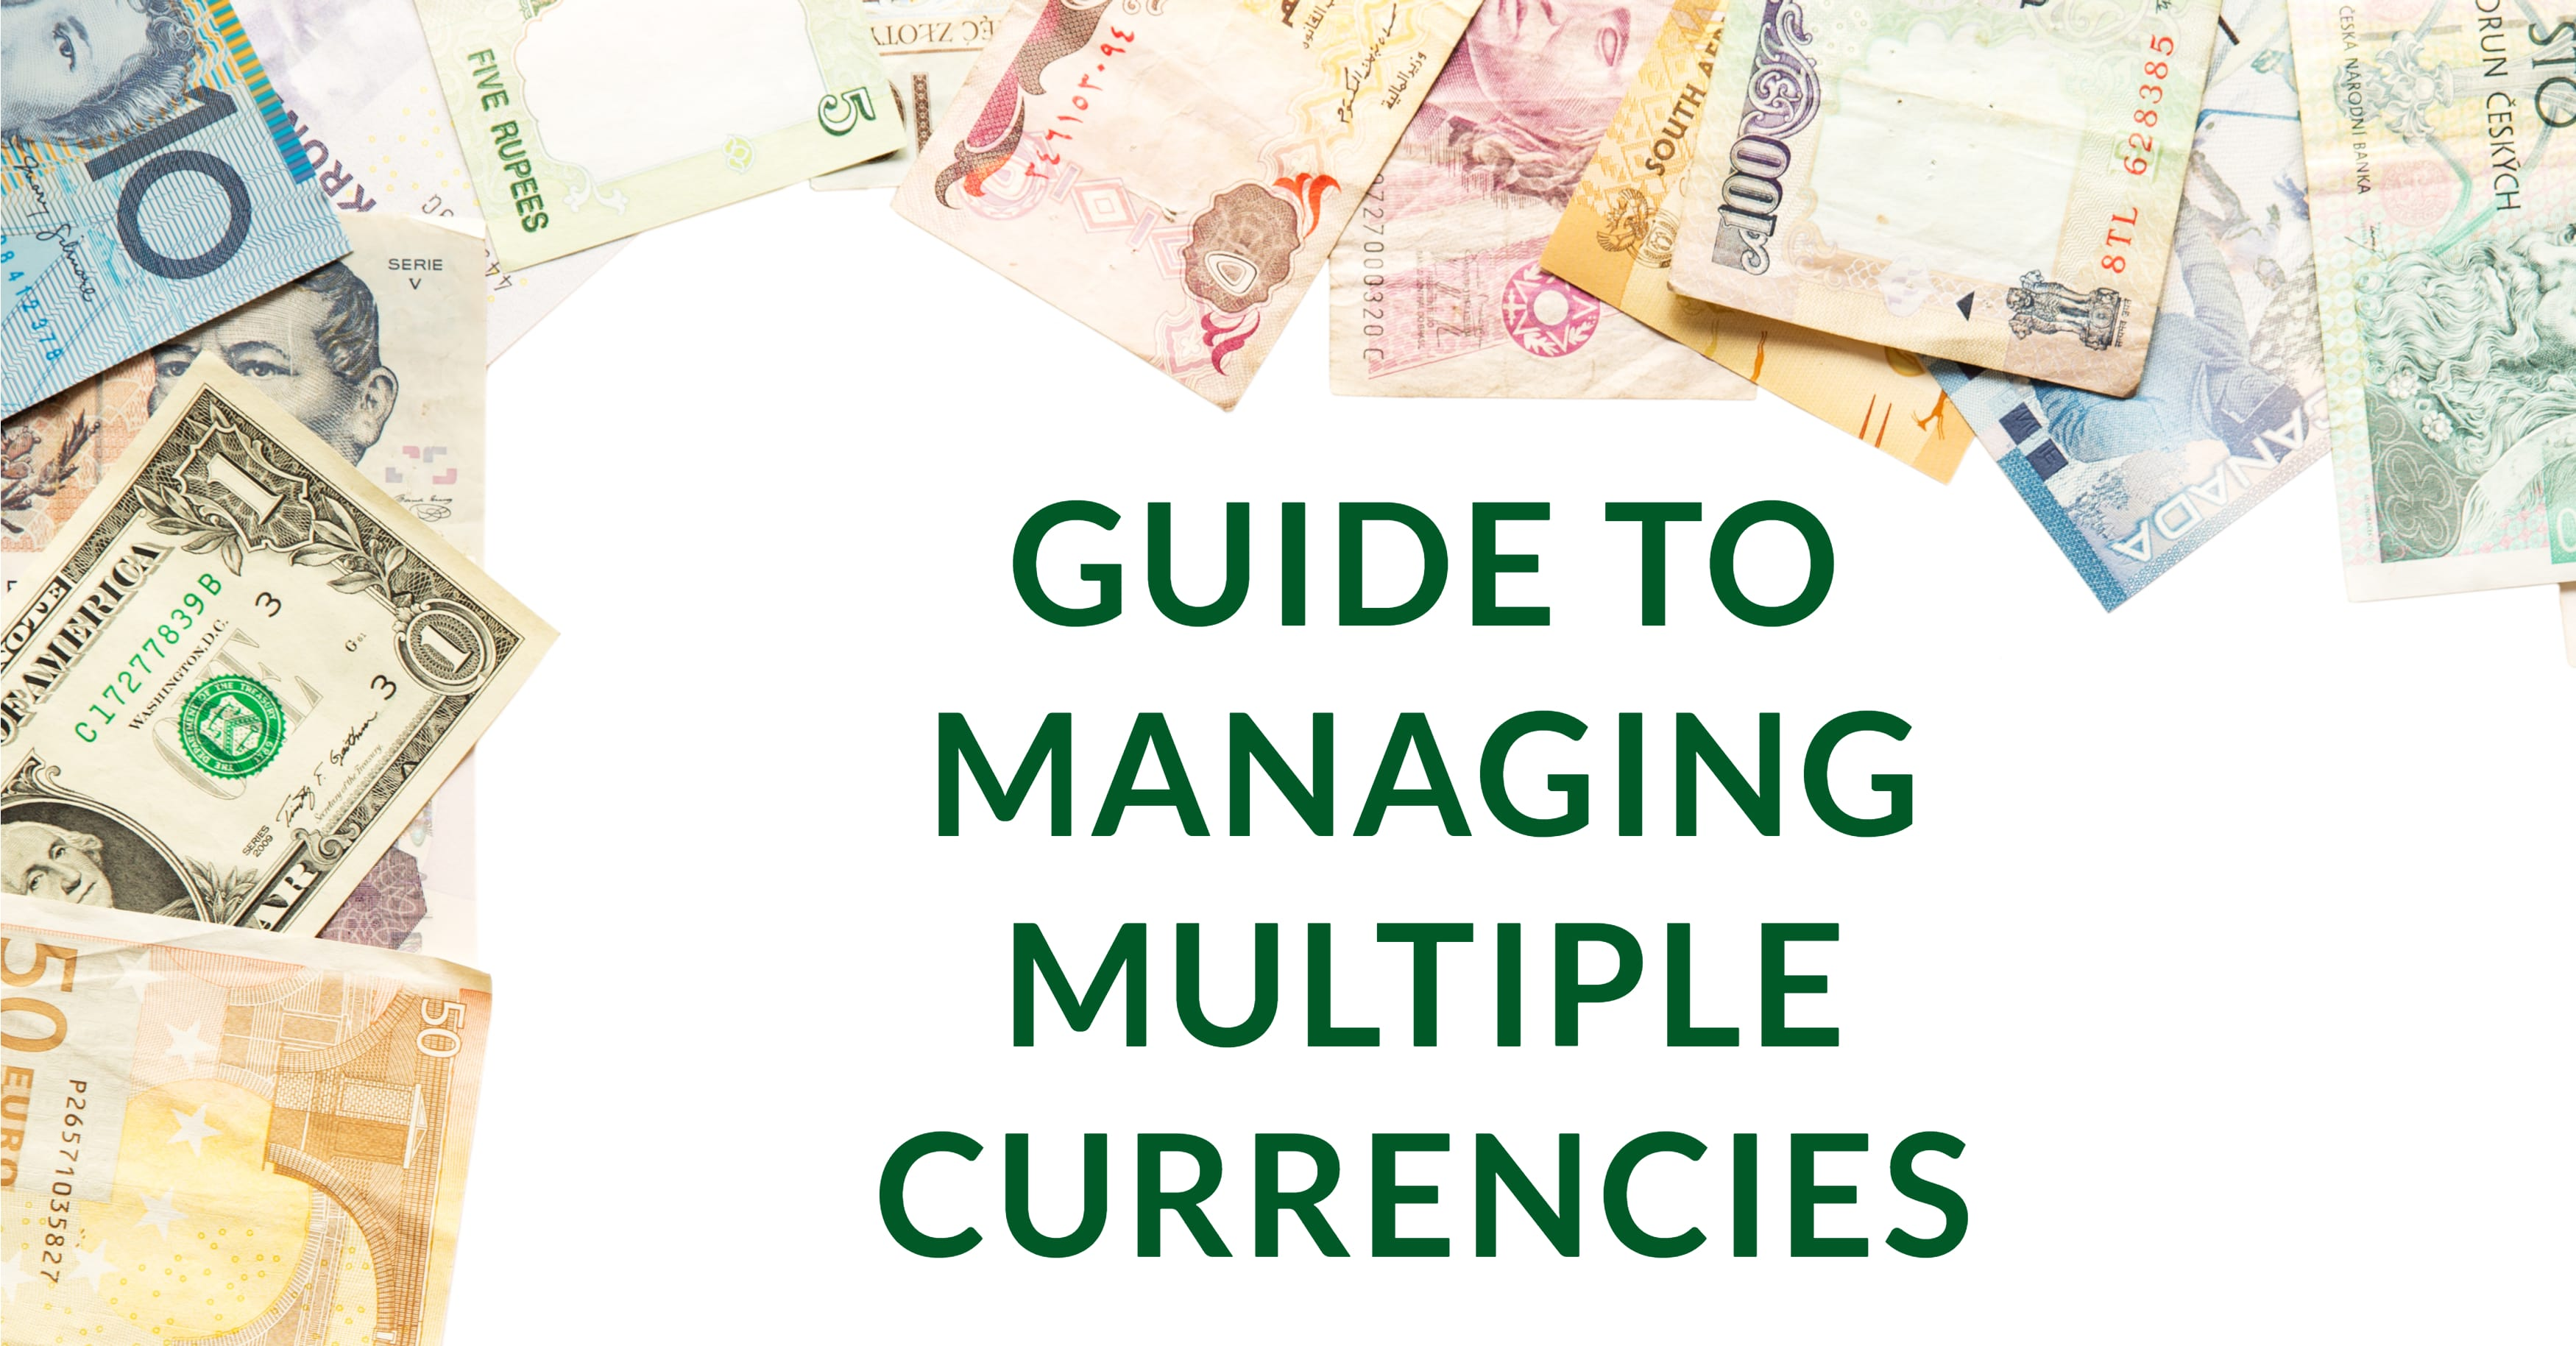 Guide to Managing Multiple Currencies